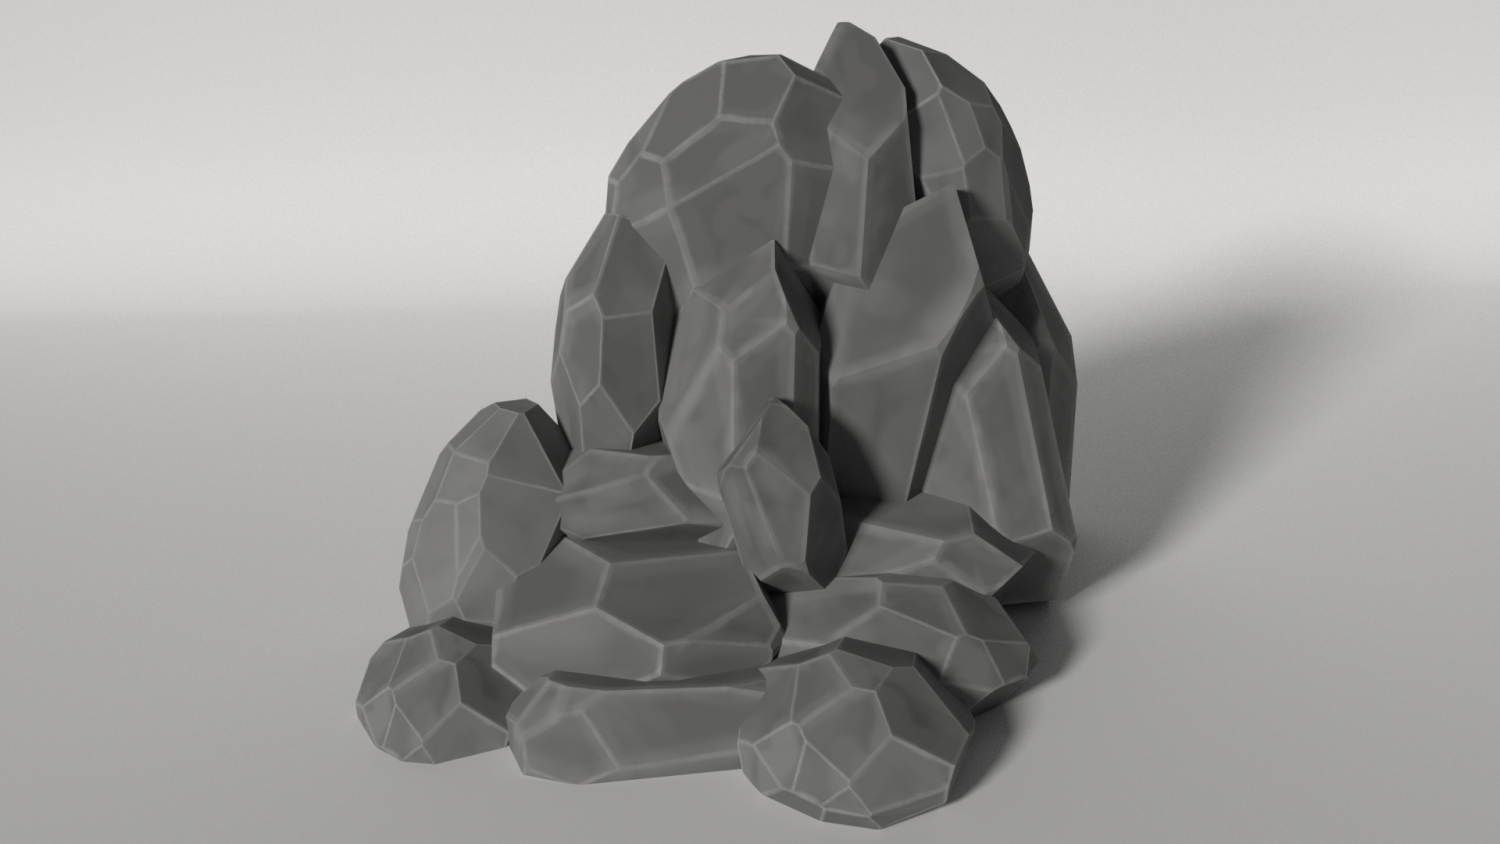 Low Poly Rocks 3d Model In Environment 3dexport